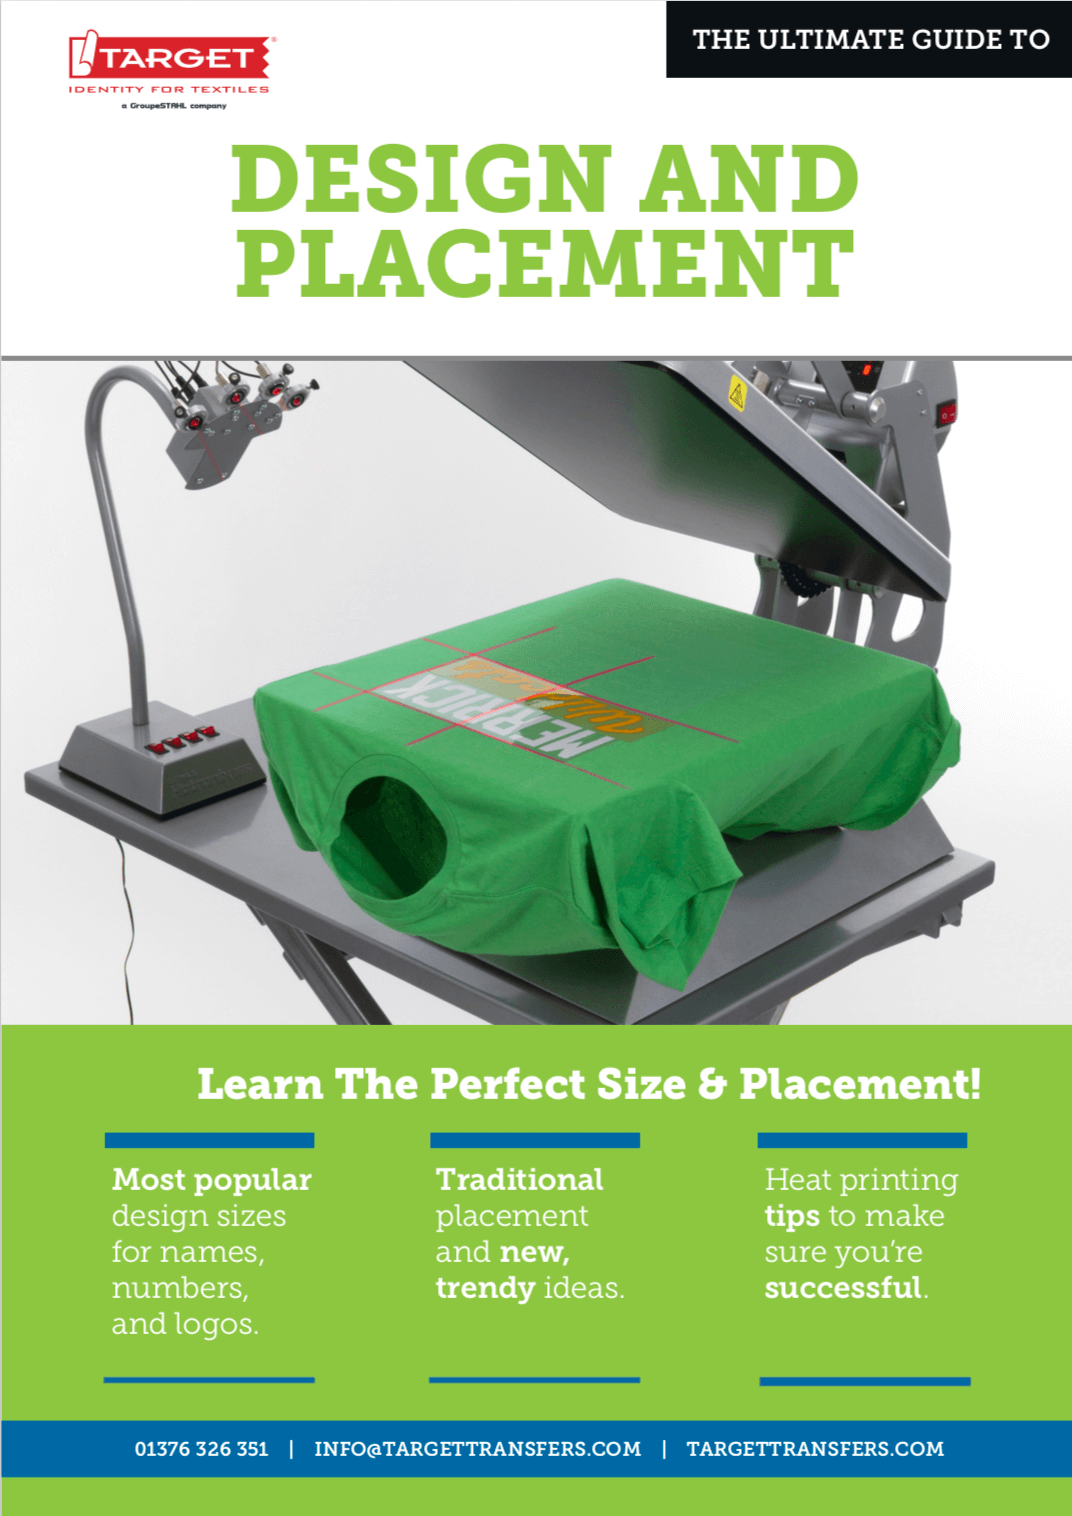 Download Our Free E-Book: The Ultimate Guide to Design & Placement